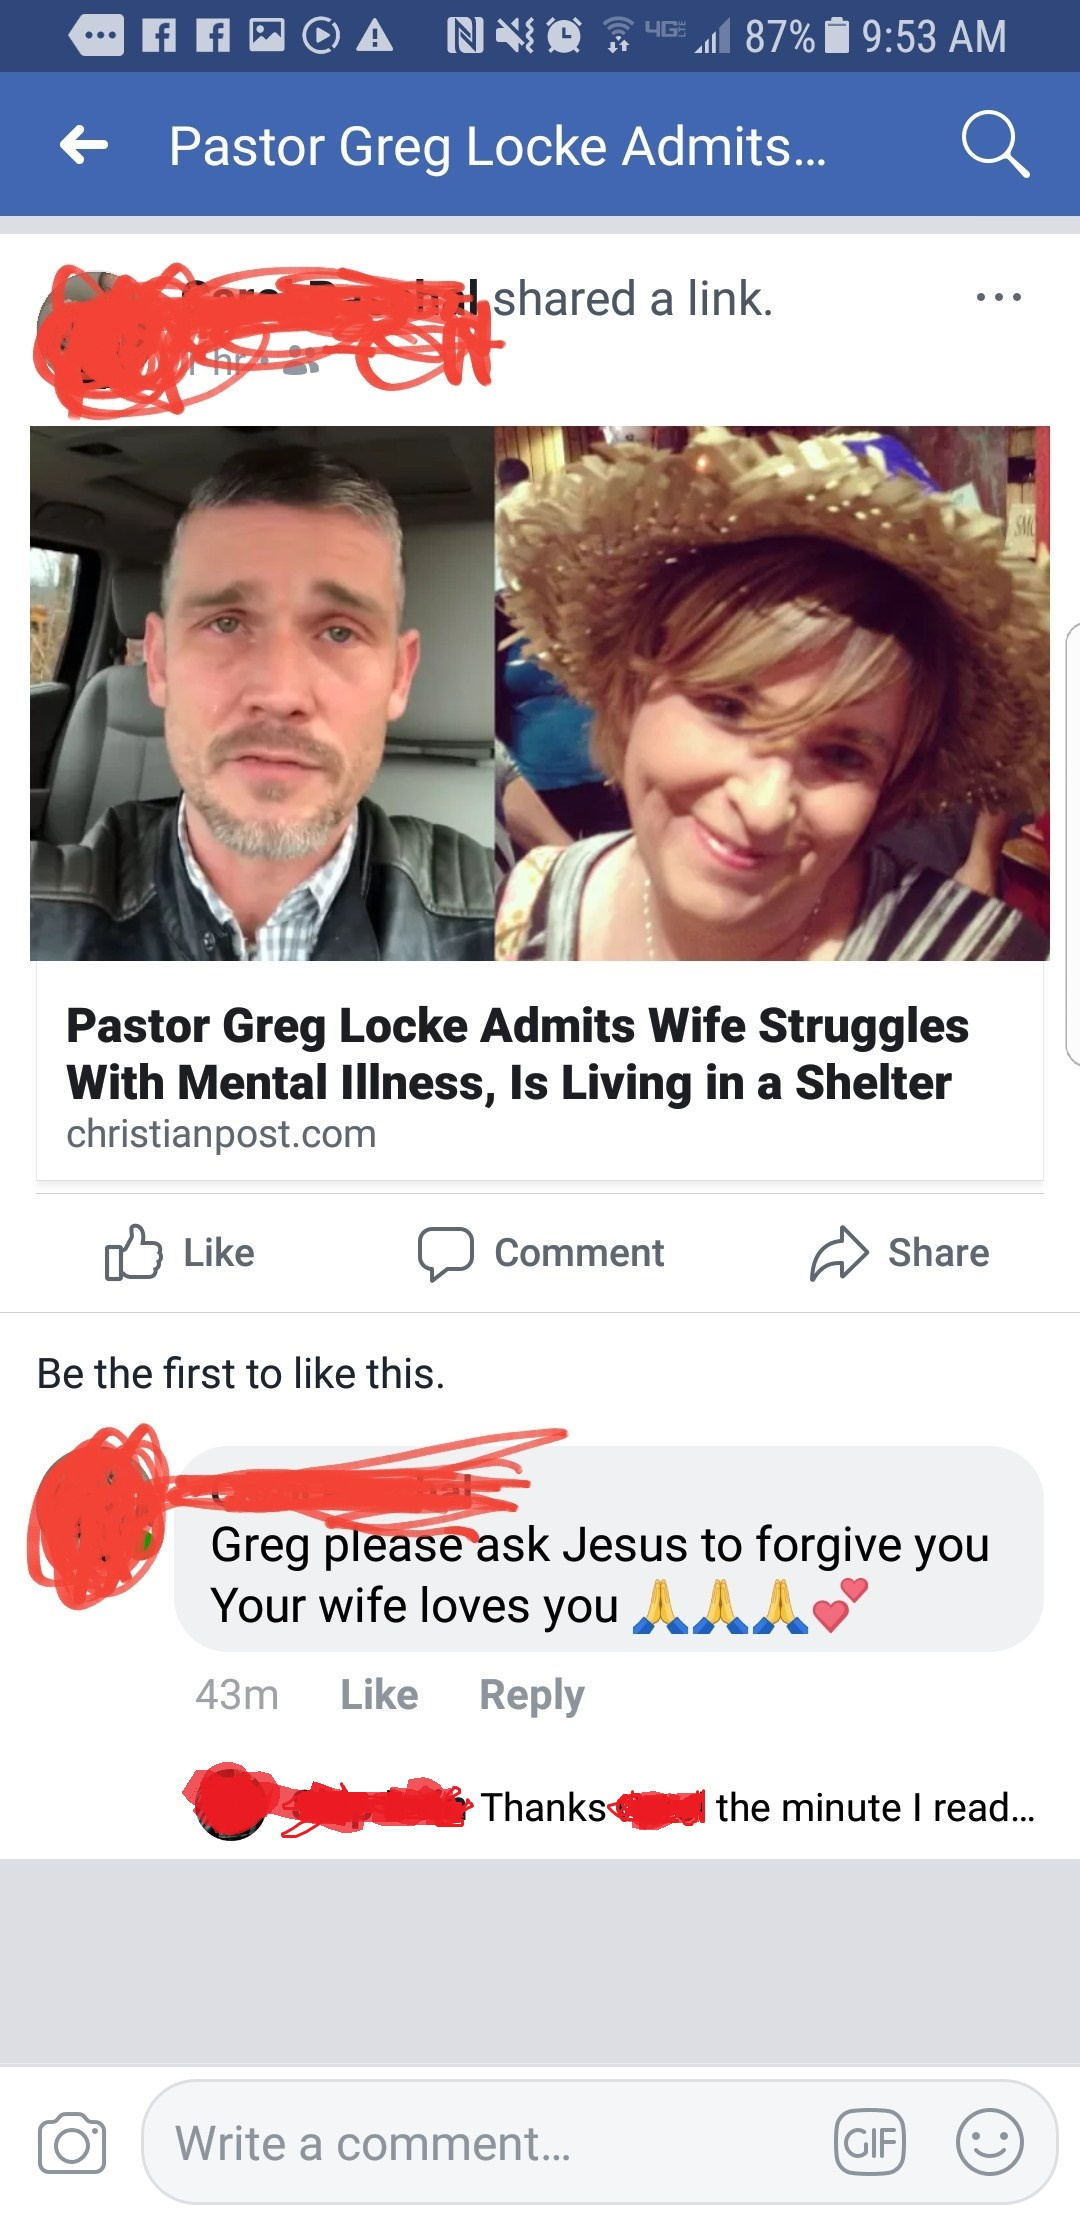 This is a screenshot from the Facebook feed of the director of the shelter  where Melissa has been staying. She is exhorting Greg to ask forgiveness.